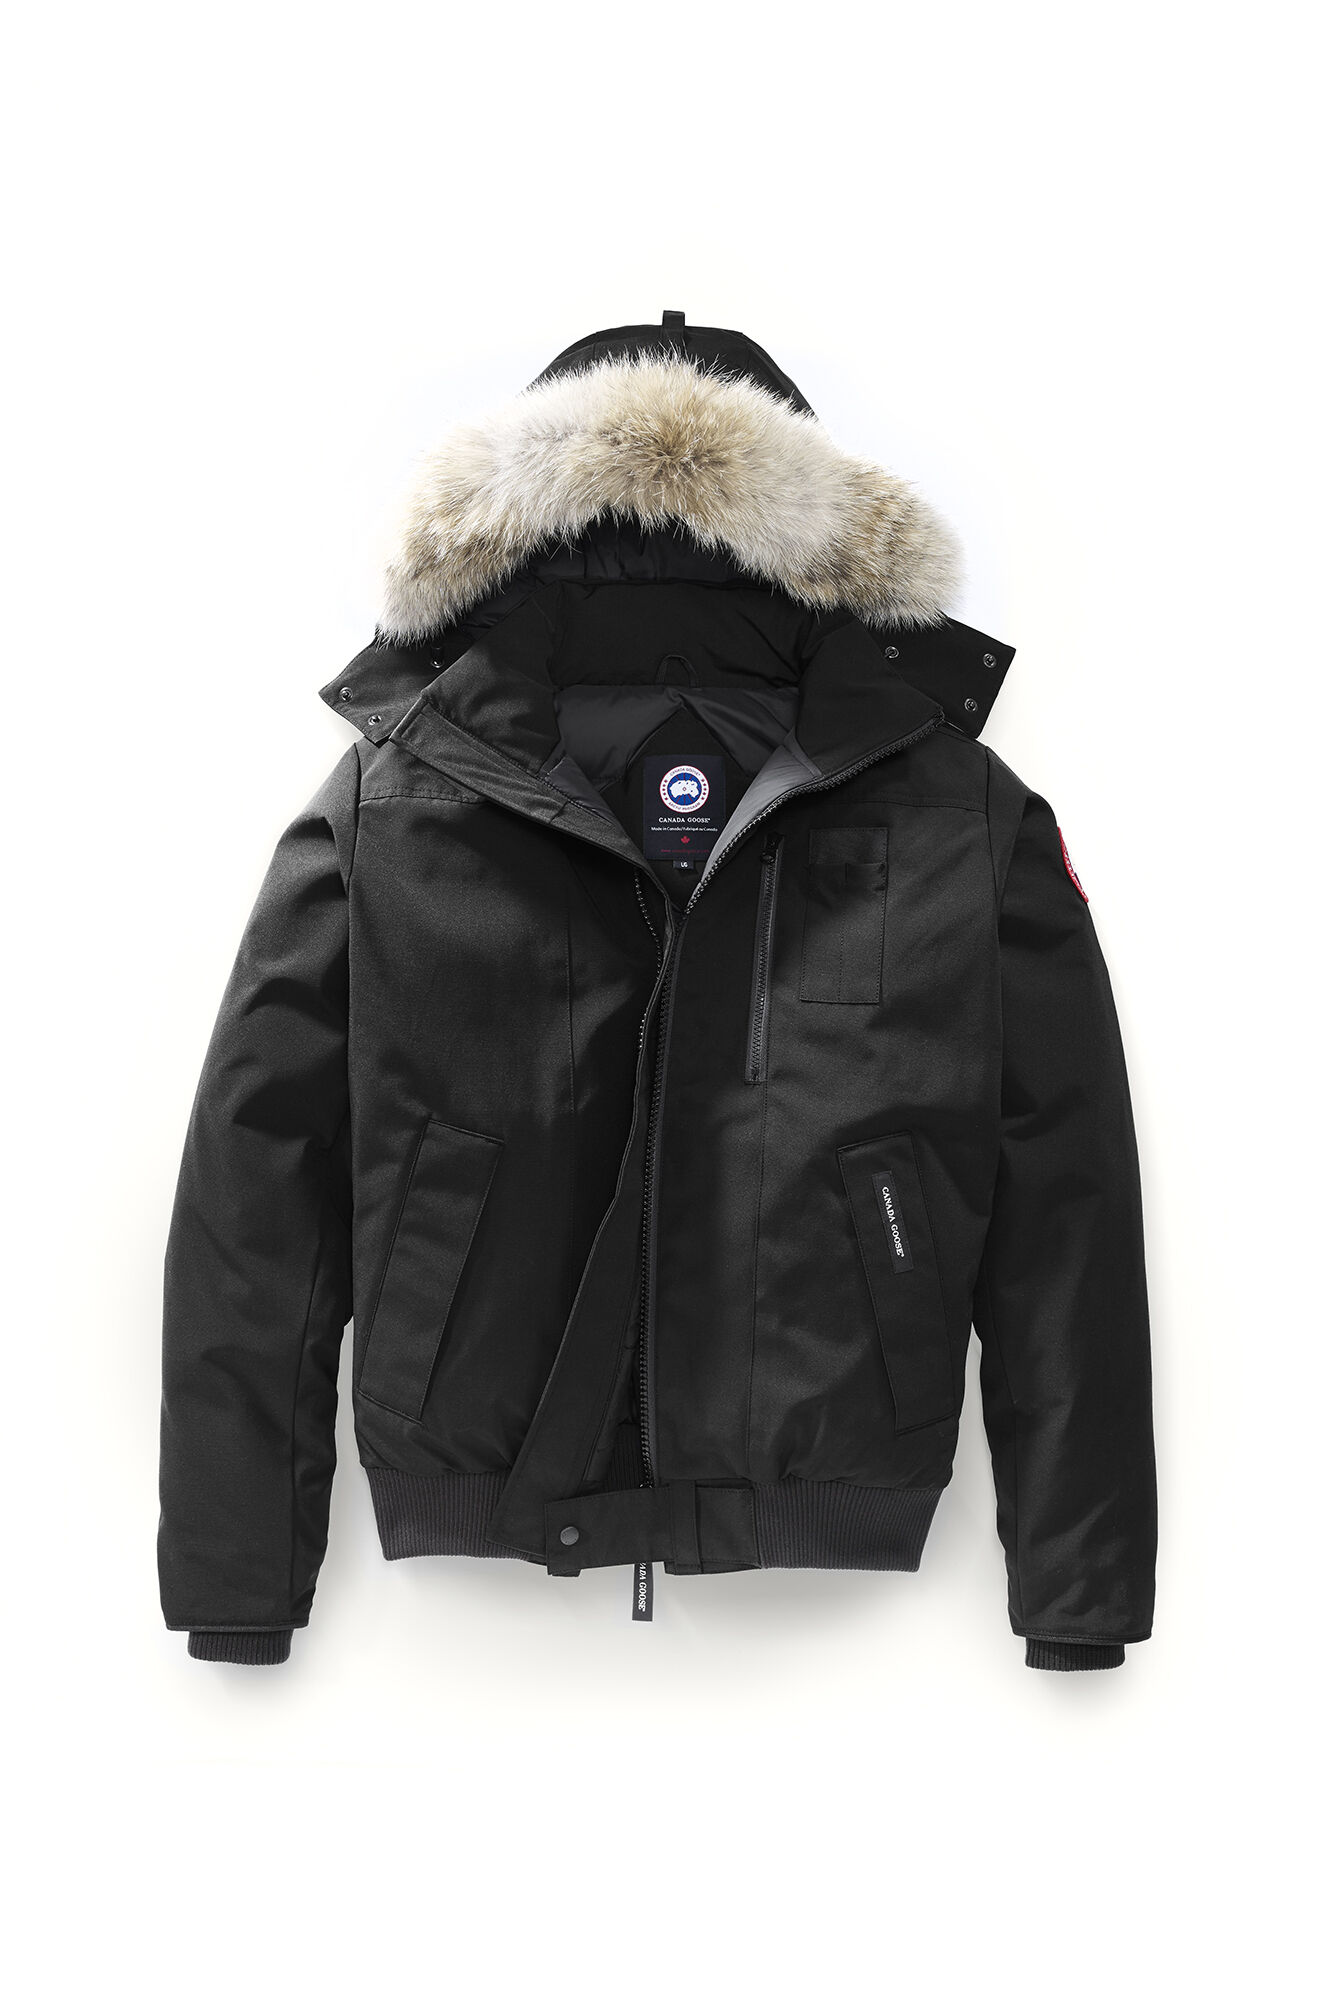 canada goose jacket zipper broke